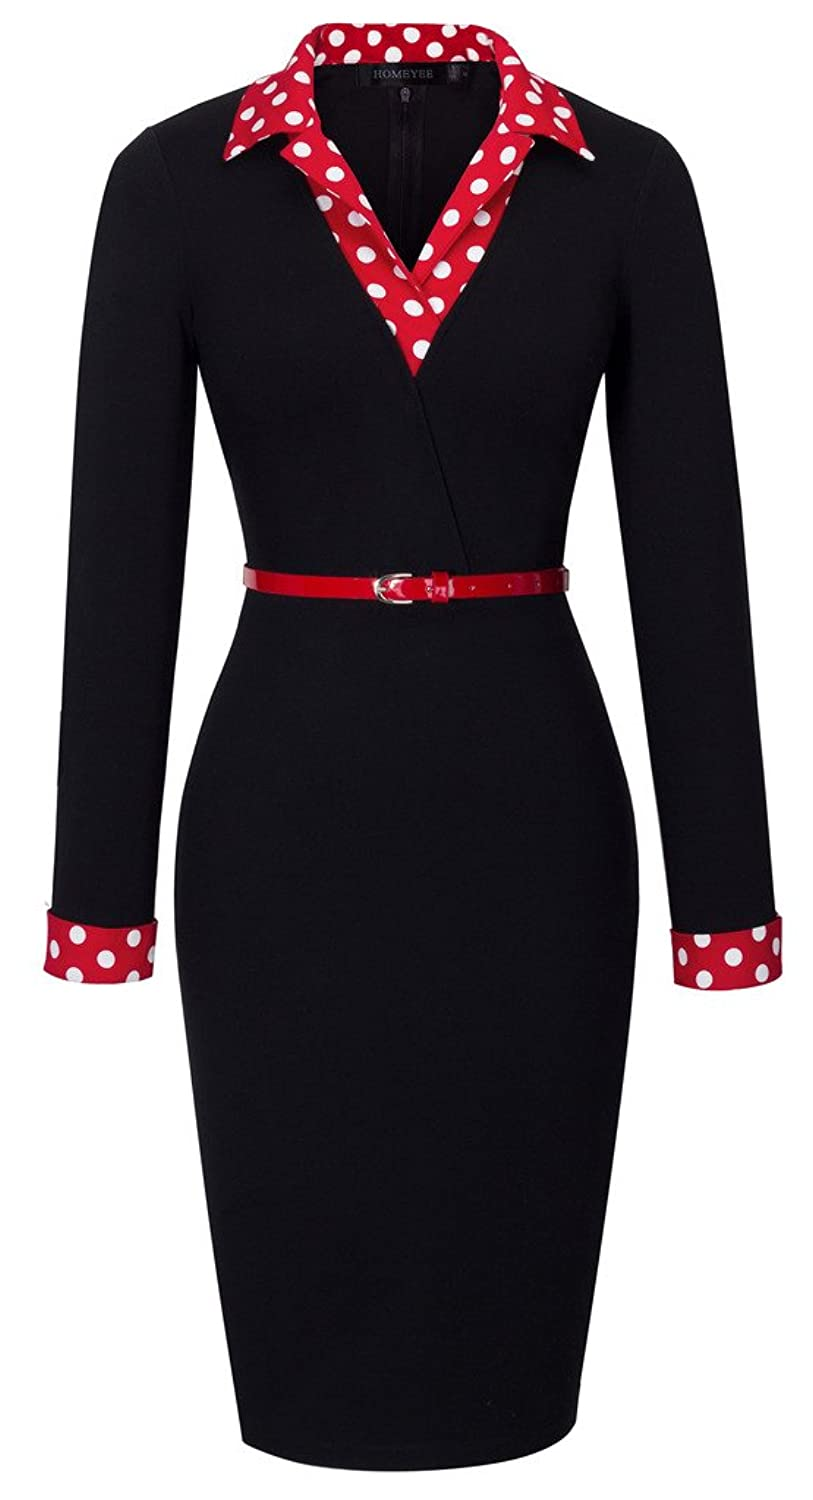 5fc477b21 Style: Elegant Bodycon Casual Party Wear to Work Dress Feature: Long Sleeve  & Knee- Length & Turn Down ...